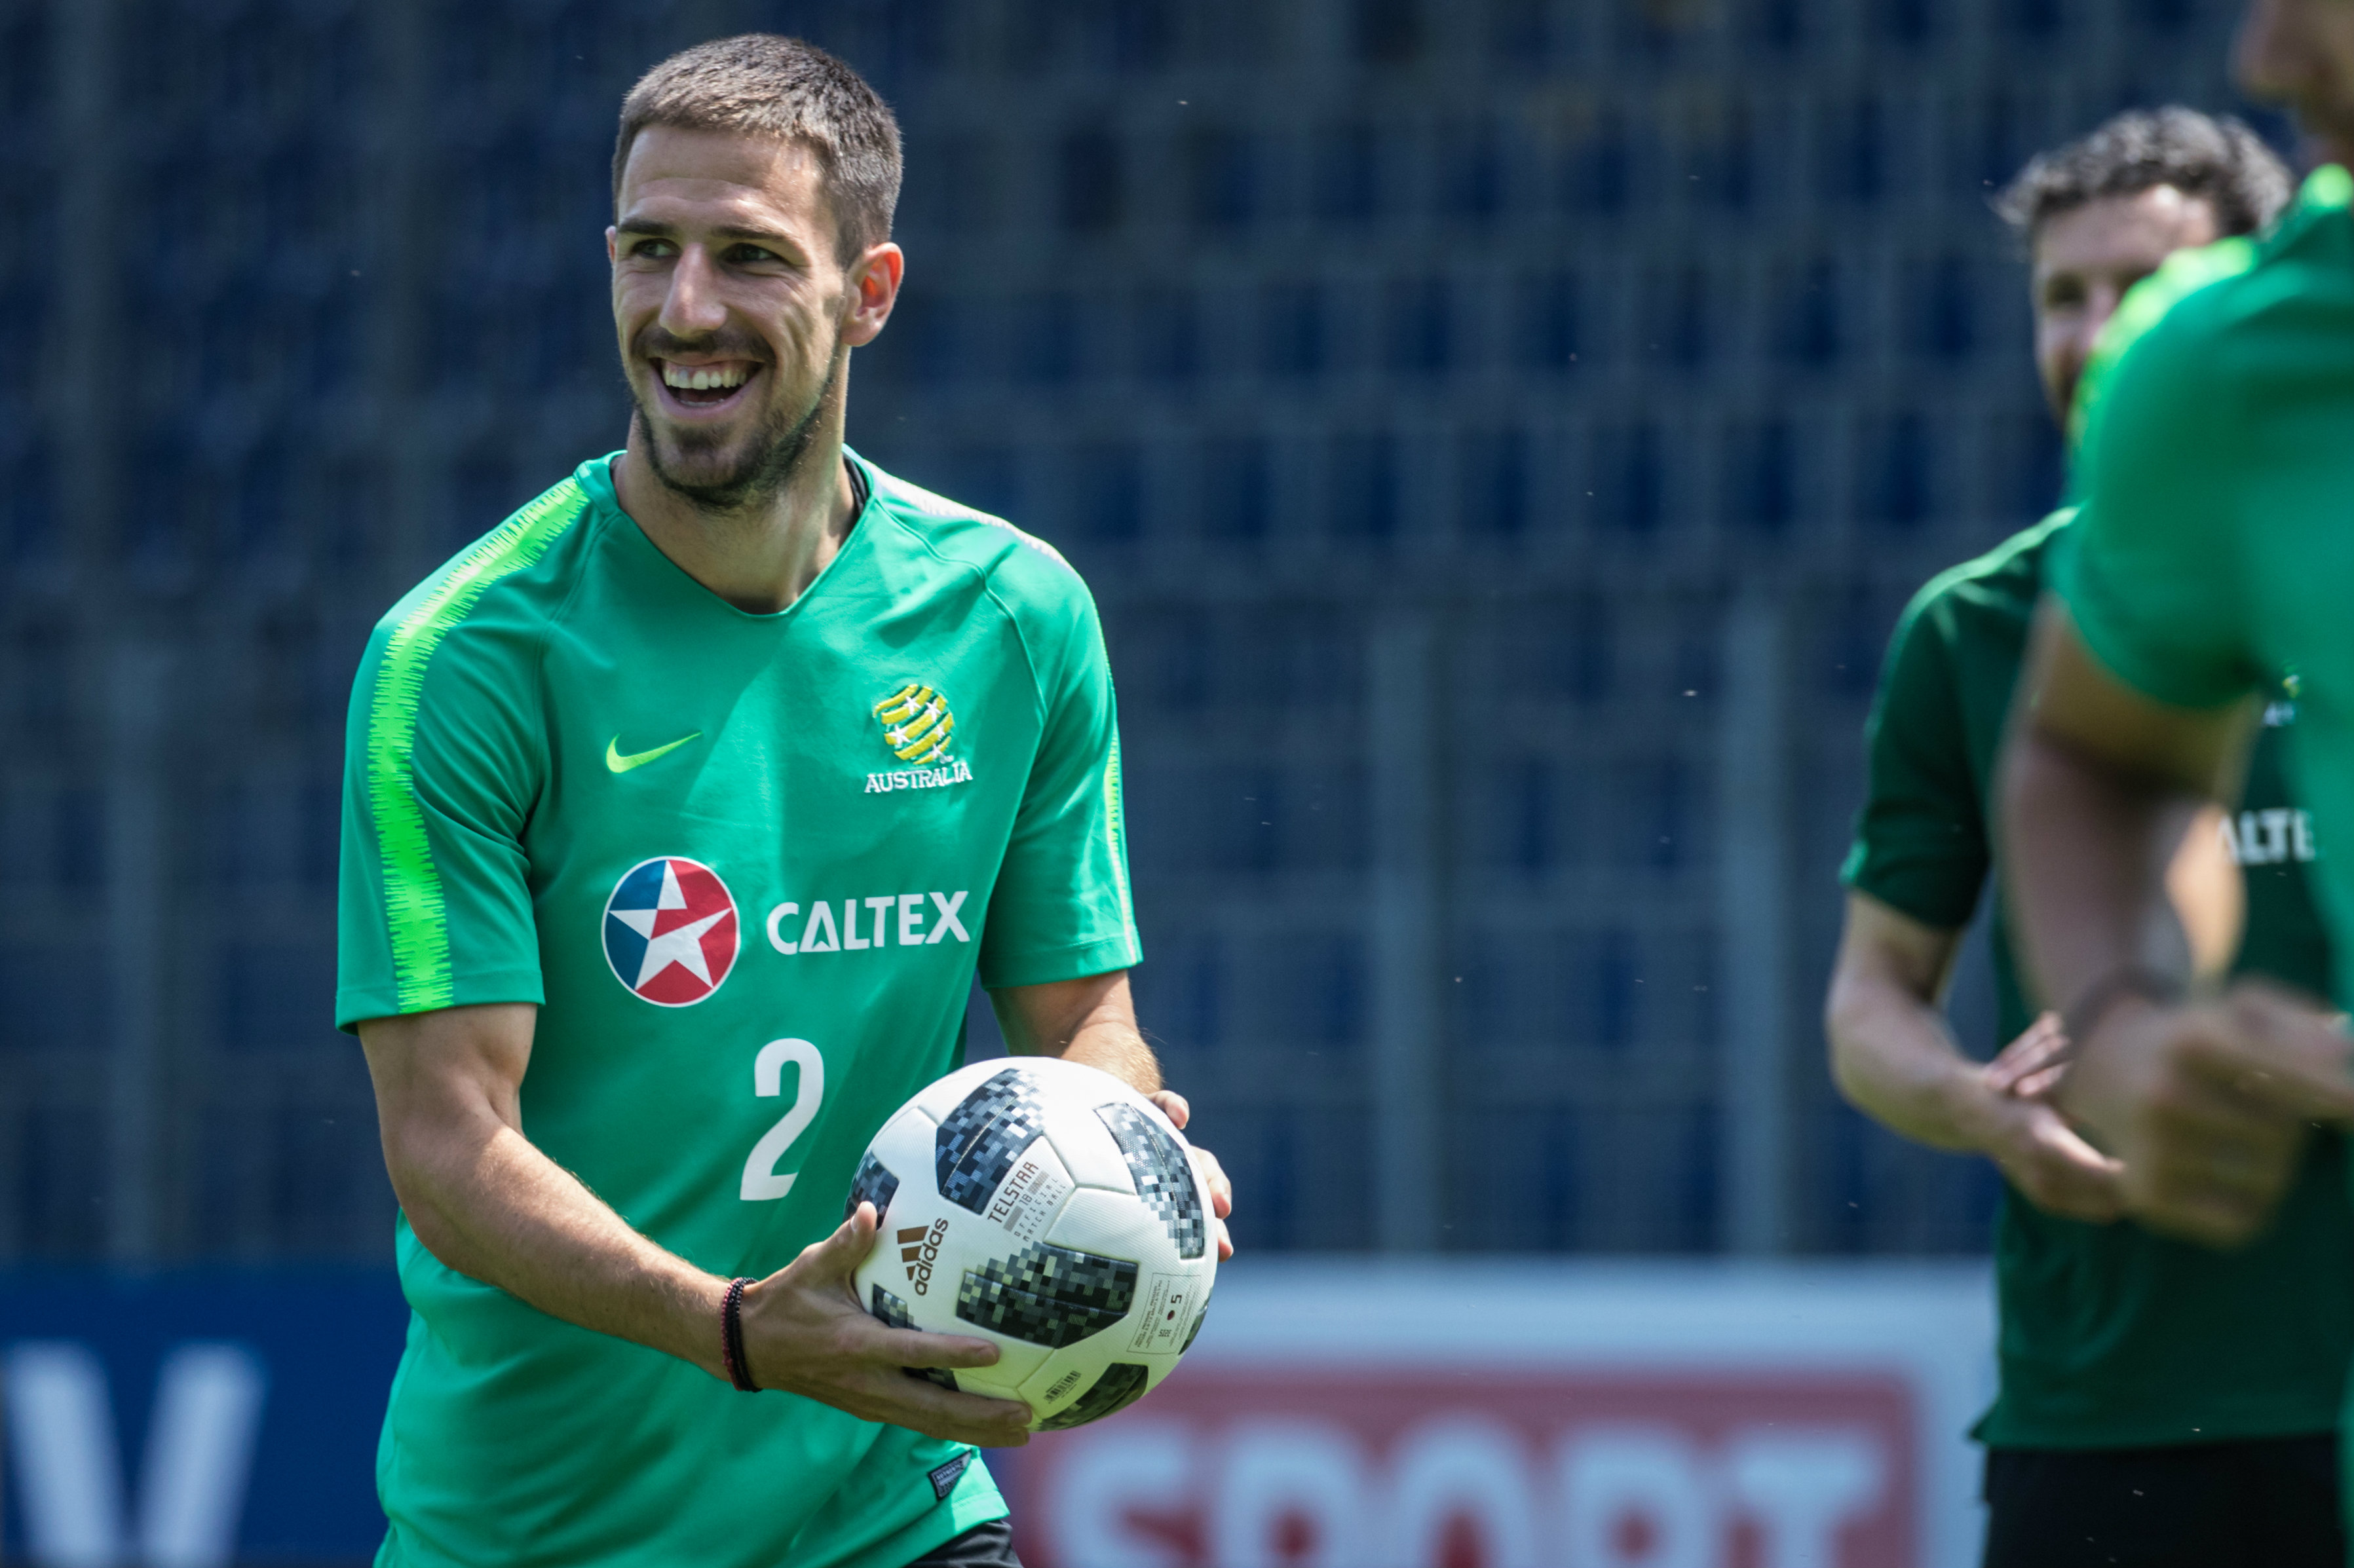 Defender Milos Degenek enjoys a lighter moment.